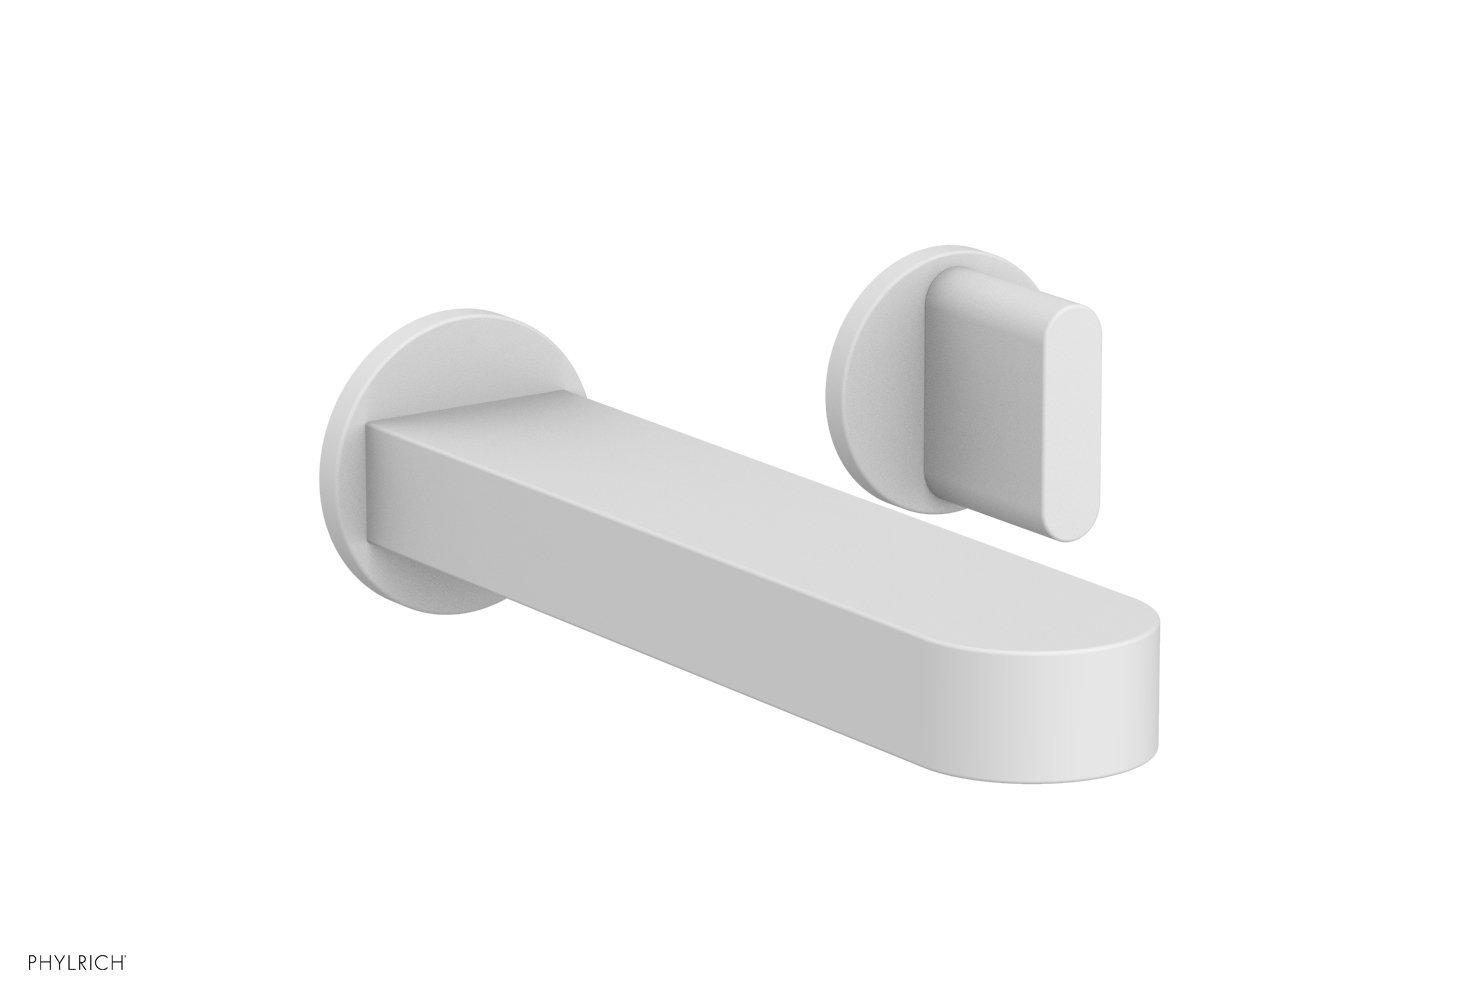 Phylrich 183-15-050 ROND Single Handle Wall Lavatory Set - Blade Handles - Satin White